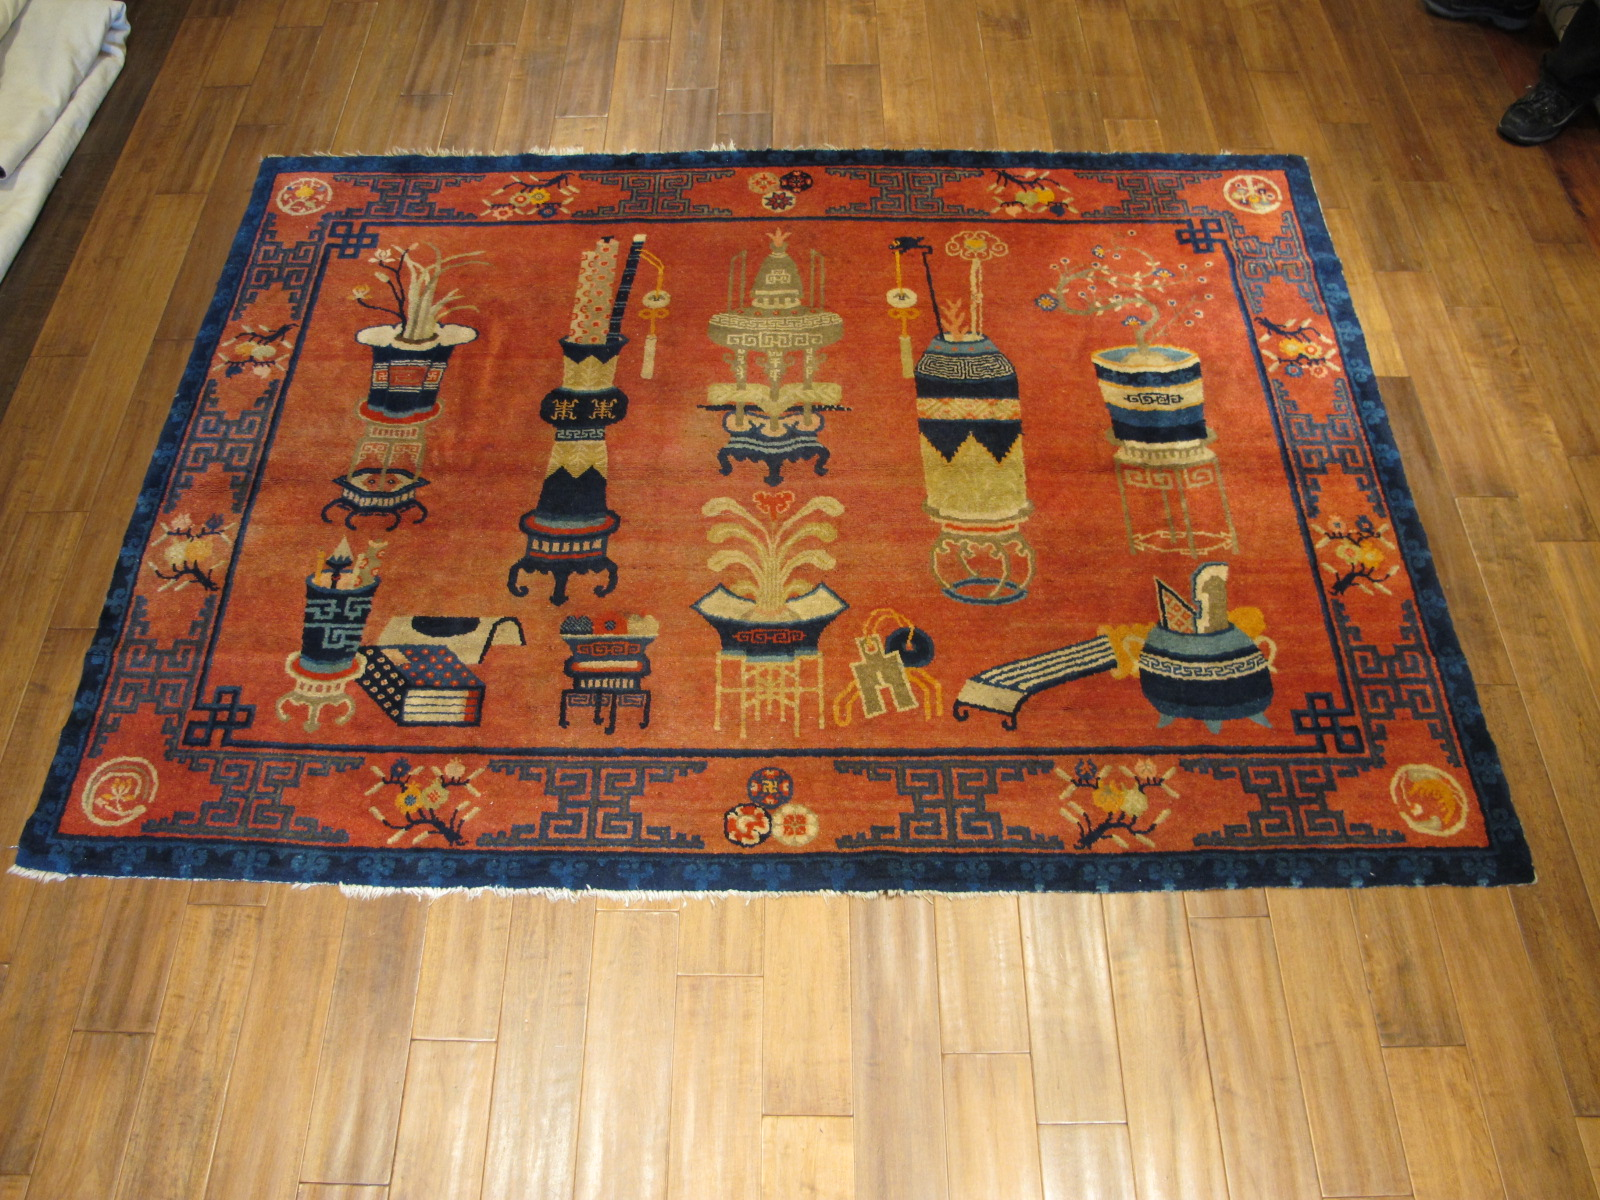 21457 Chinese Patao pictorial rug 7,9 x 5,8 (1)